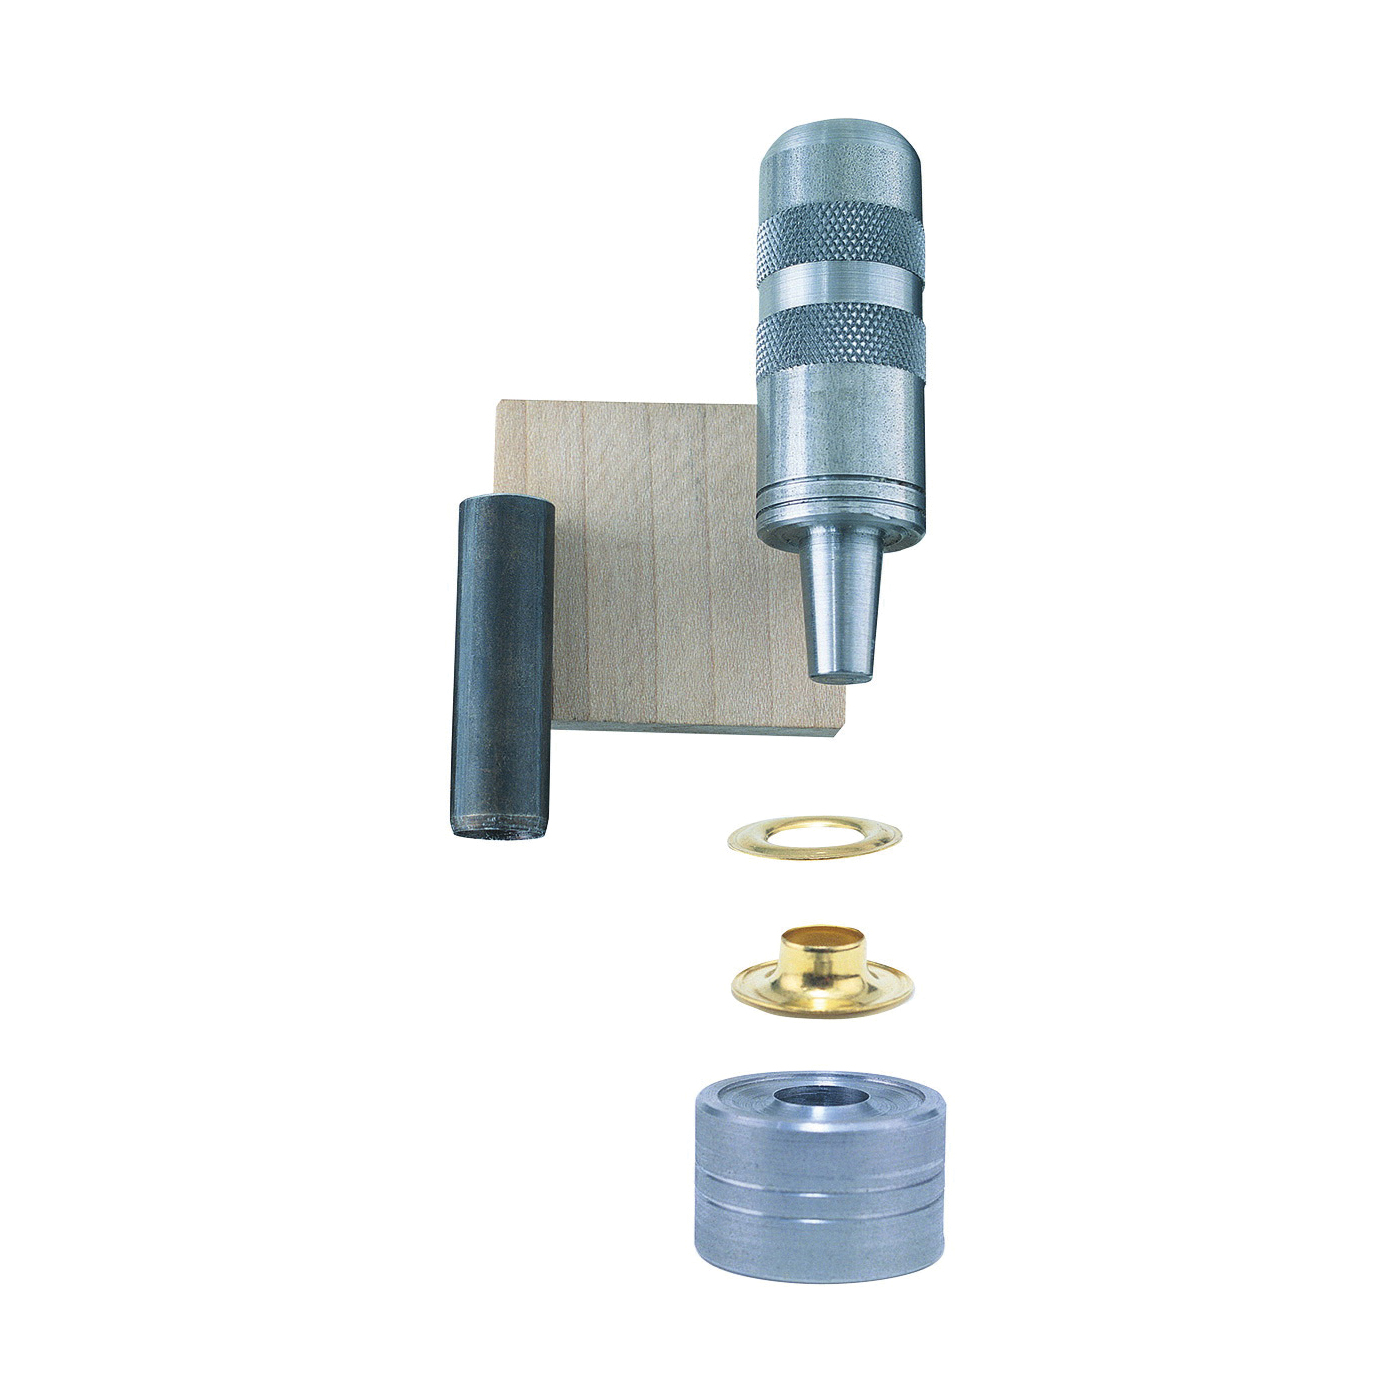 Picture of GENERAL 71260 Utility Grommet Kit, Brass, Black Oxide